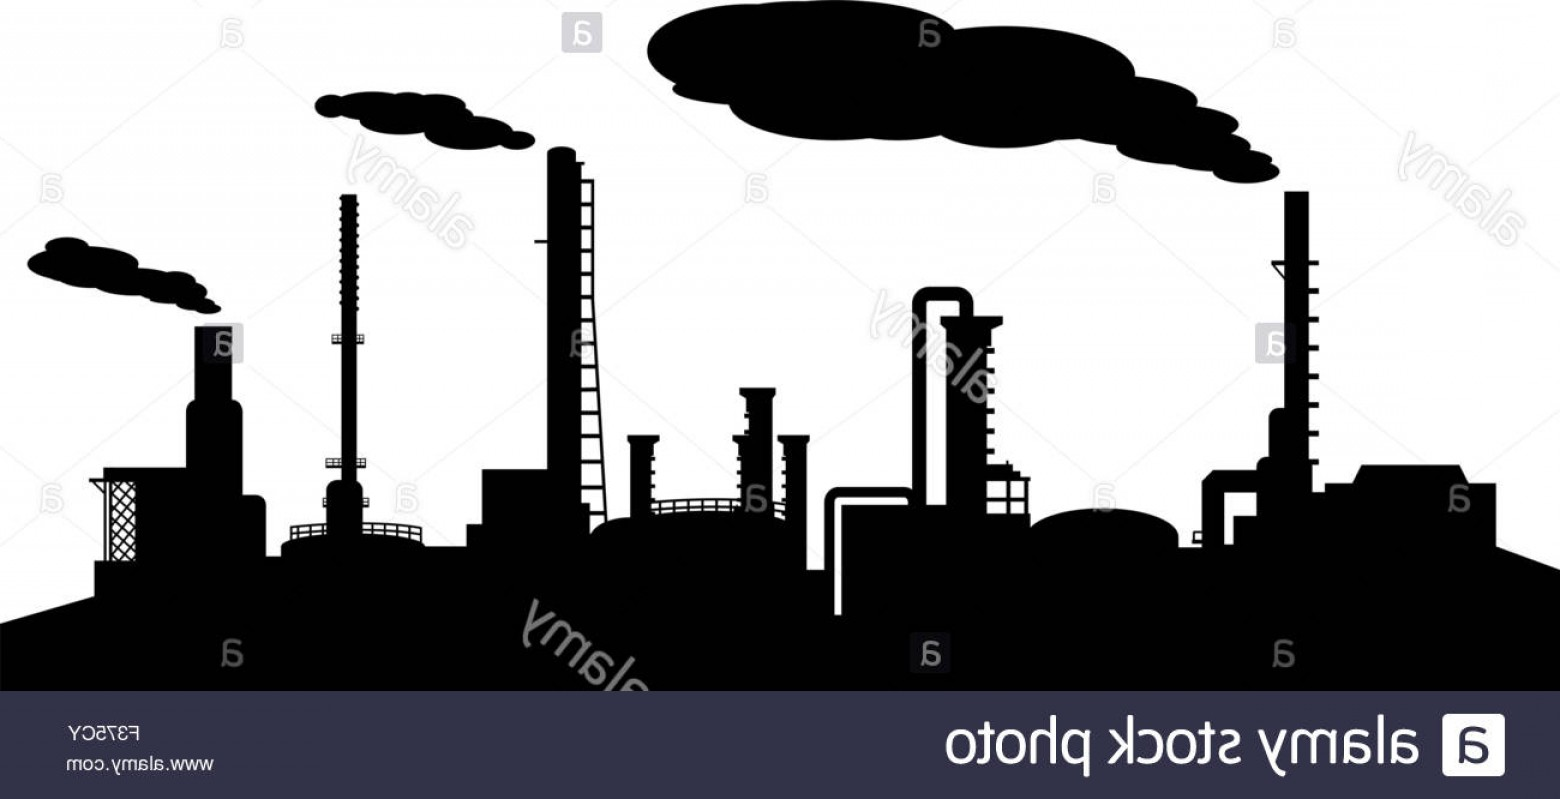 Factory Vector Skyline: Stock Photo Oil Refinery Industry Silhouette Vector